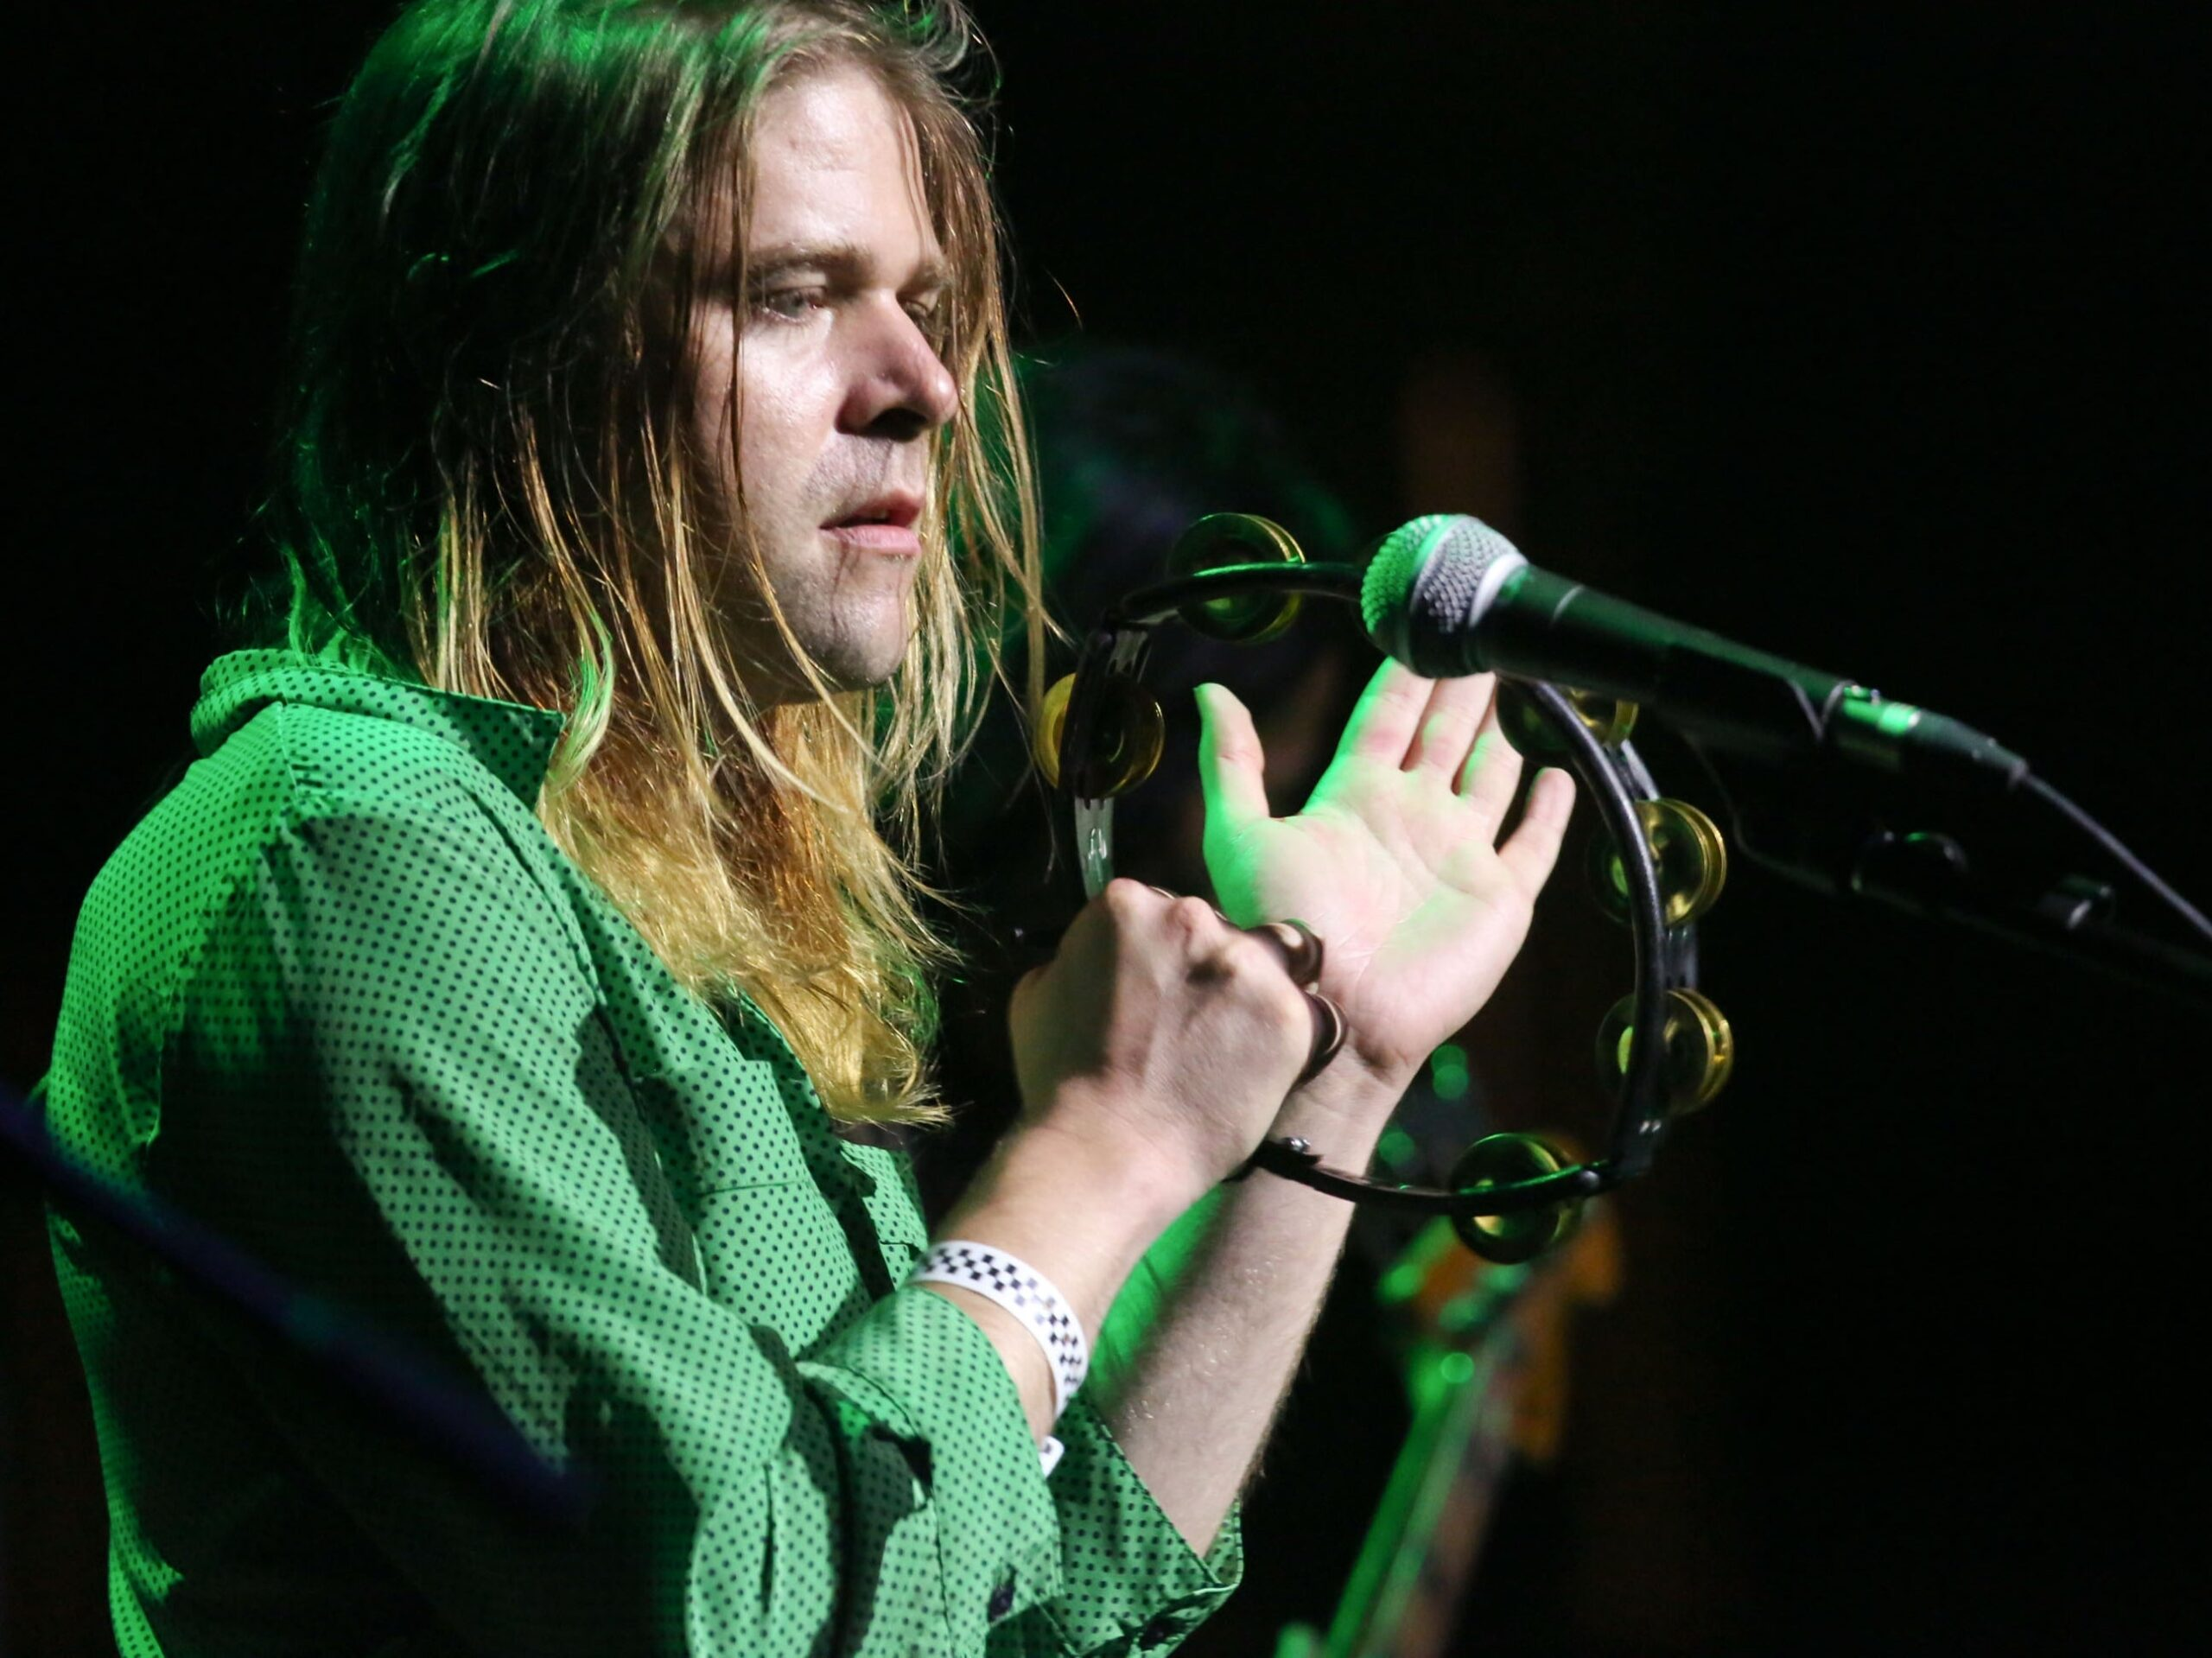 Indie musicians Ariel Pink and John Maus under fire for presence at Pro-Trump protest